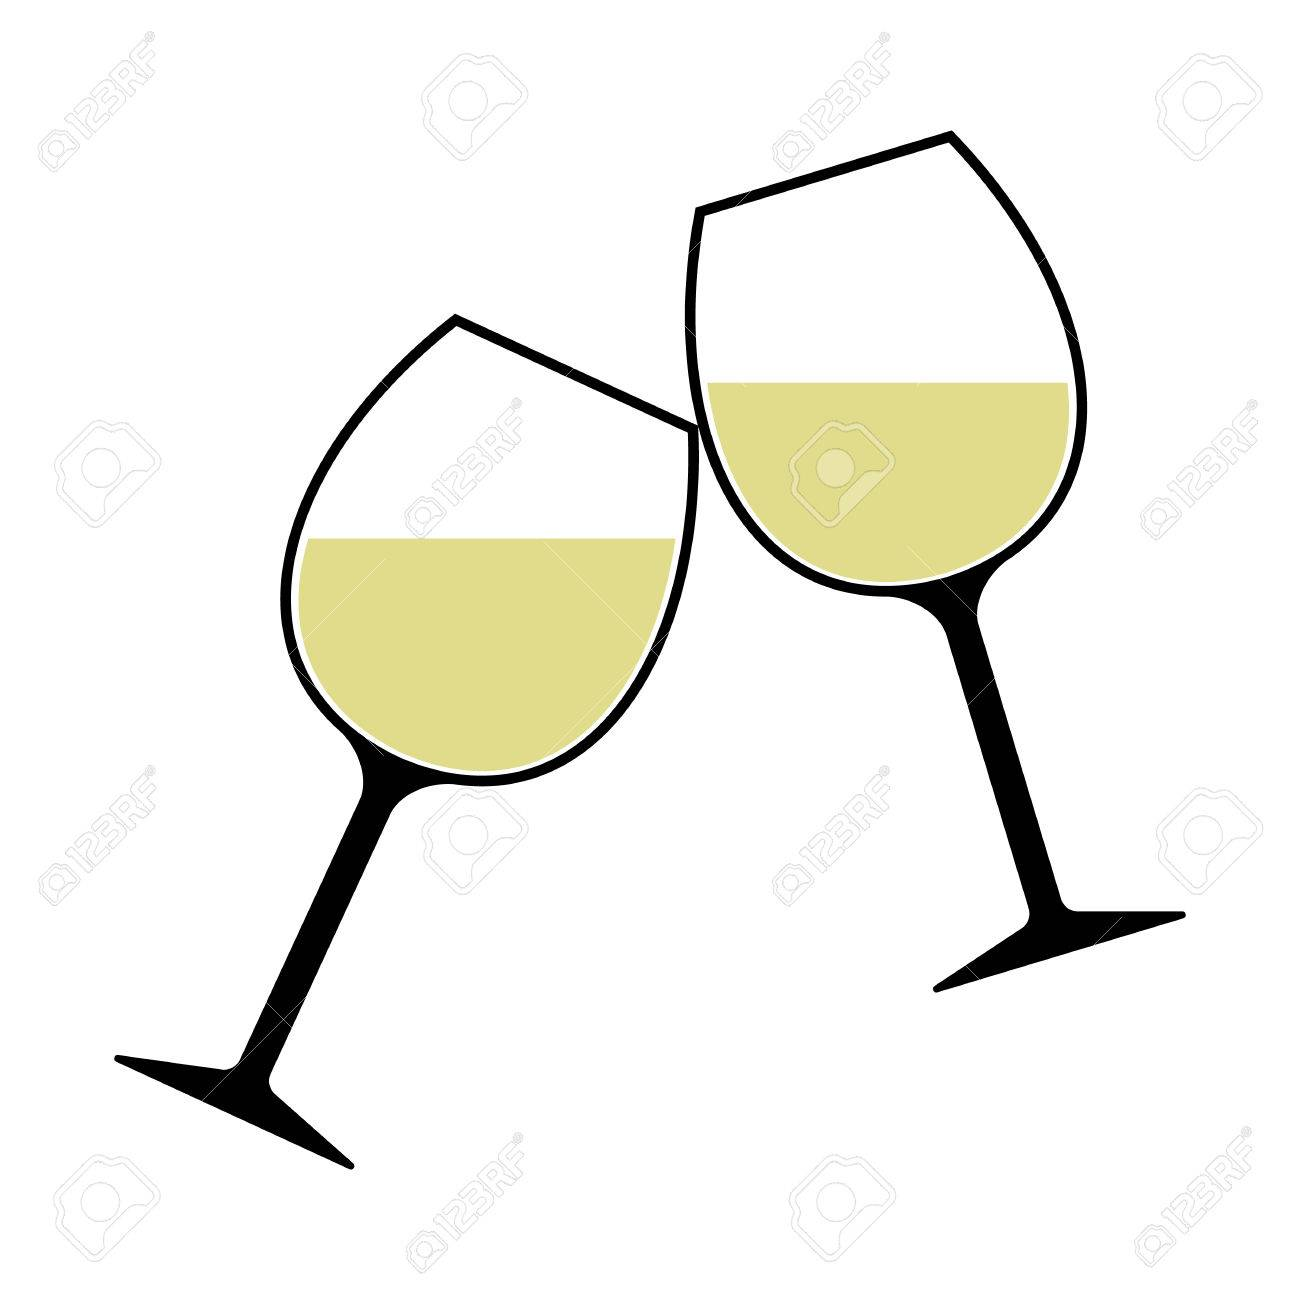 2c4c0515ea0 White Wine Glasses Clinking Vector Isolated - Cheers! Stock Vector -  82977233